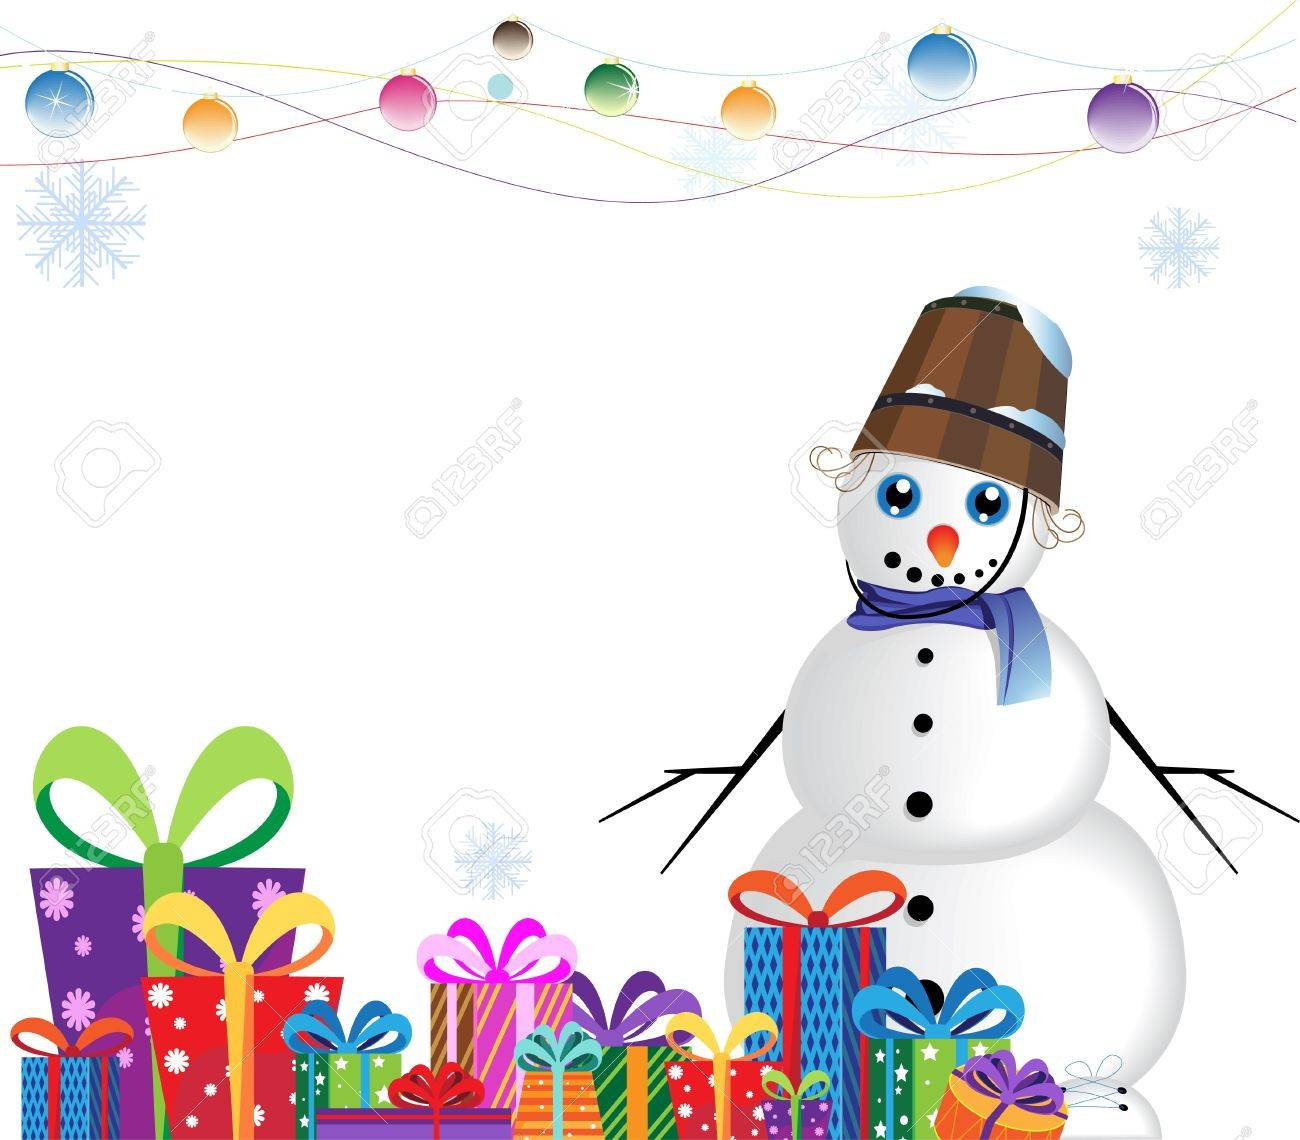 snowman with a bucket on a head near a heap of gifts on a white background Stock Vector - 16420346